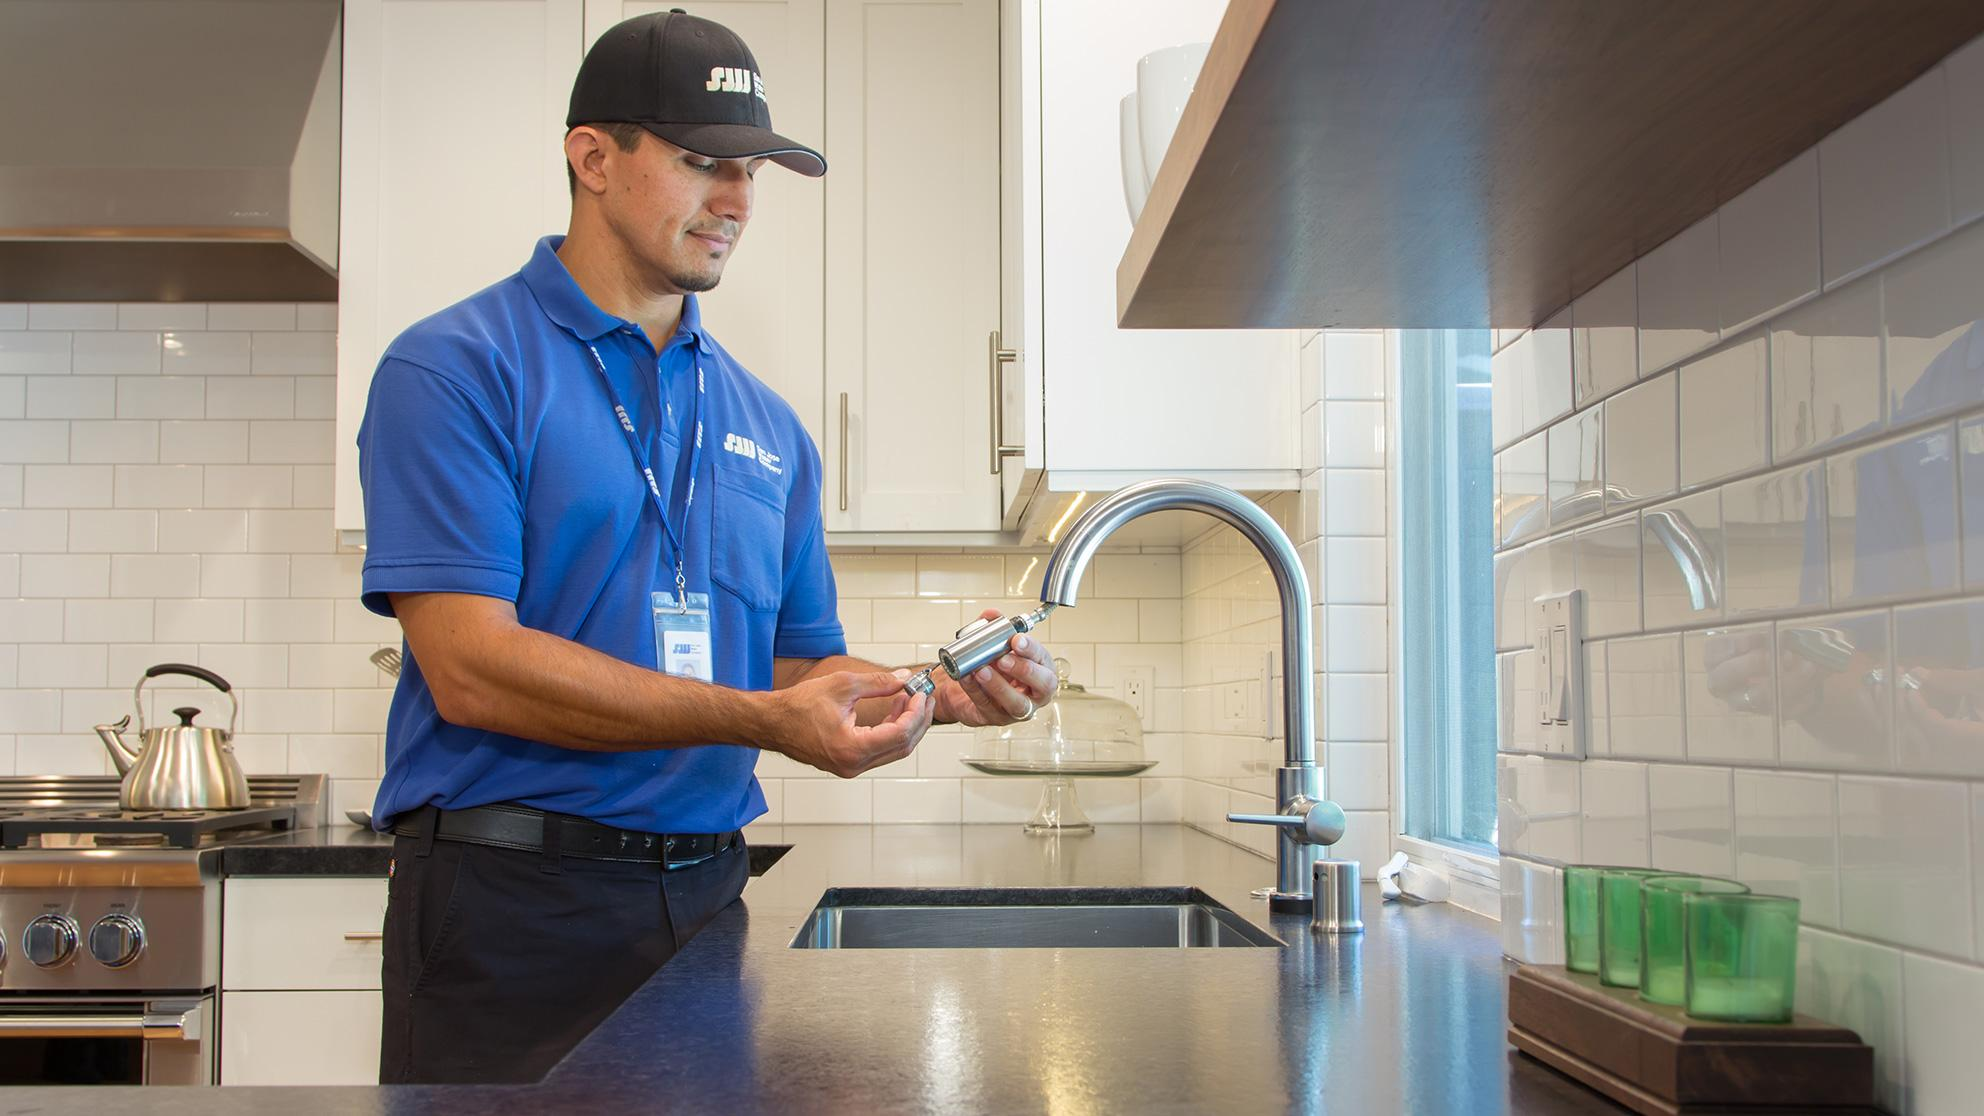 San Jose Water worker examines kitchen faucet